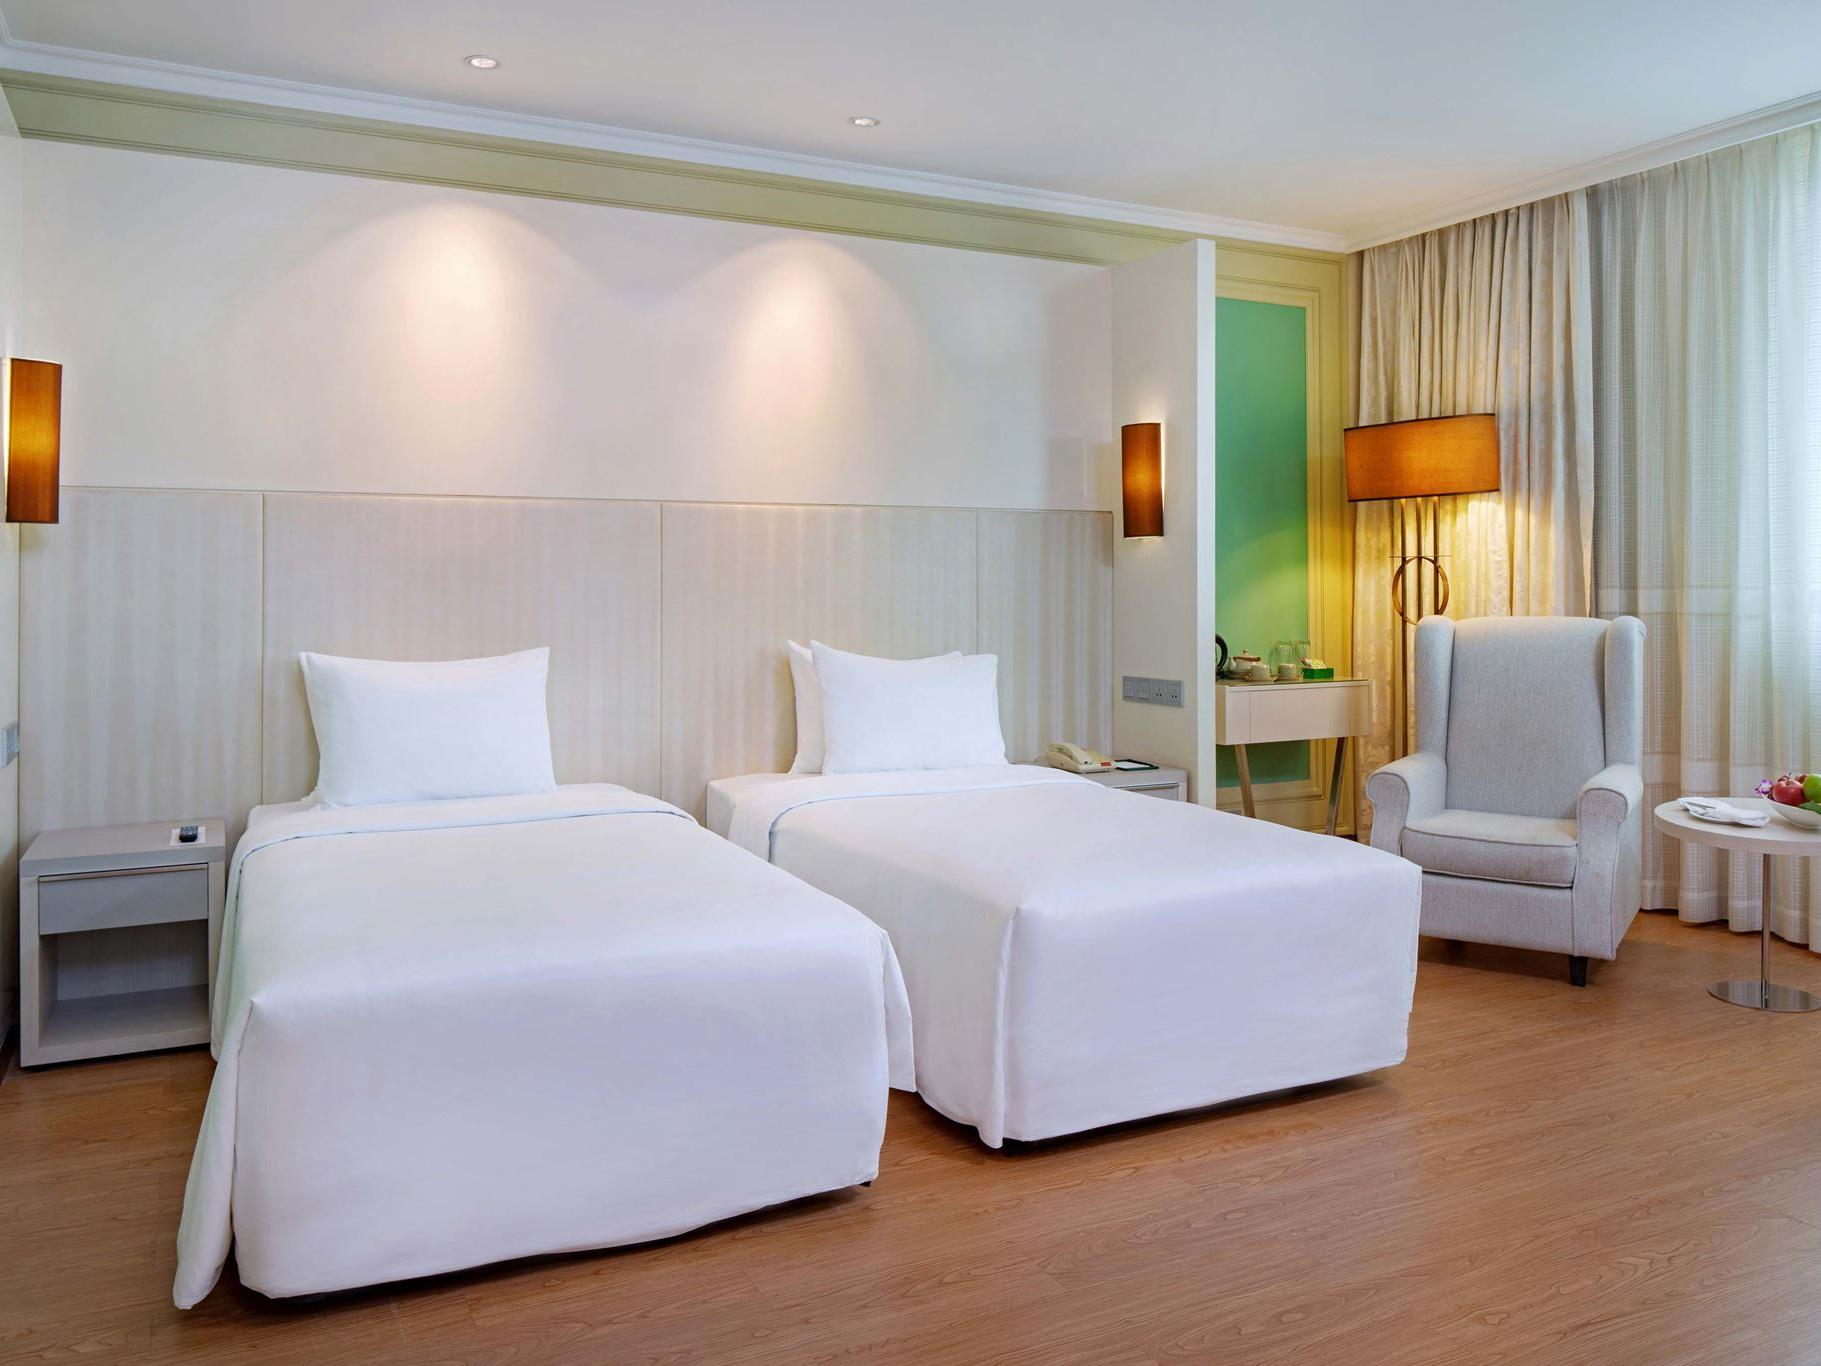 hotel room with twin bed and lounge chair